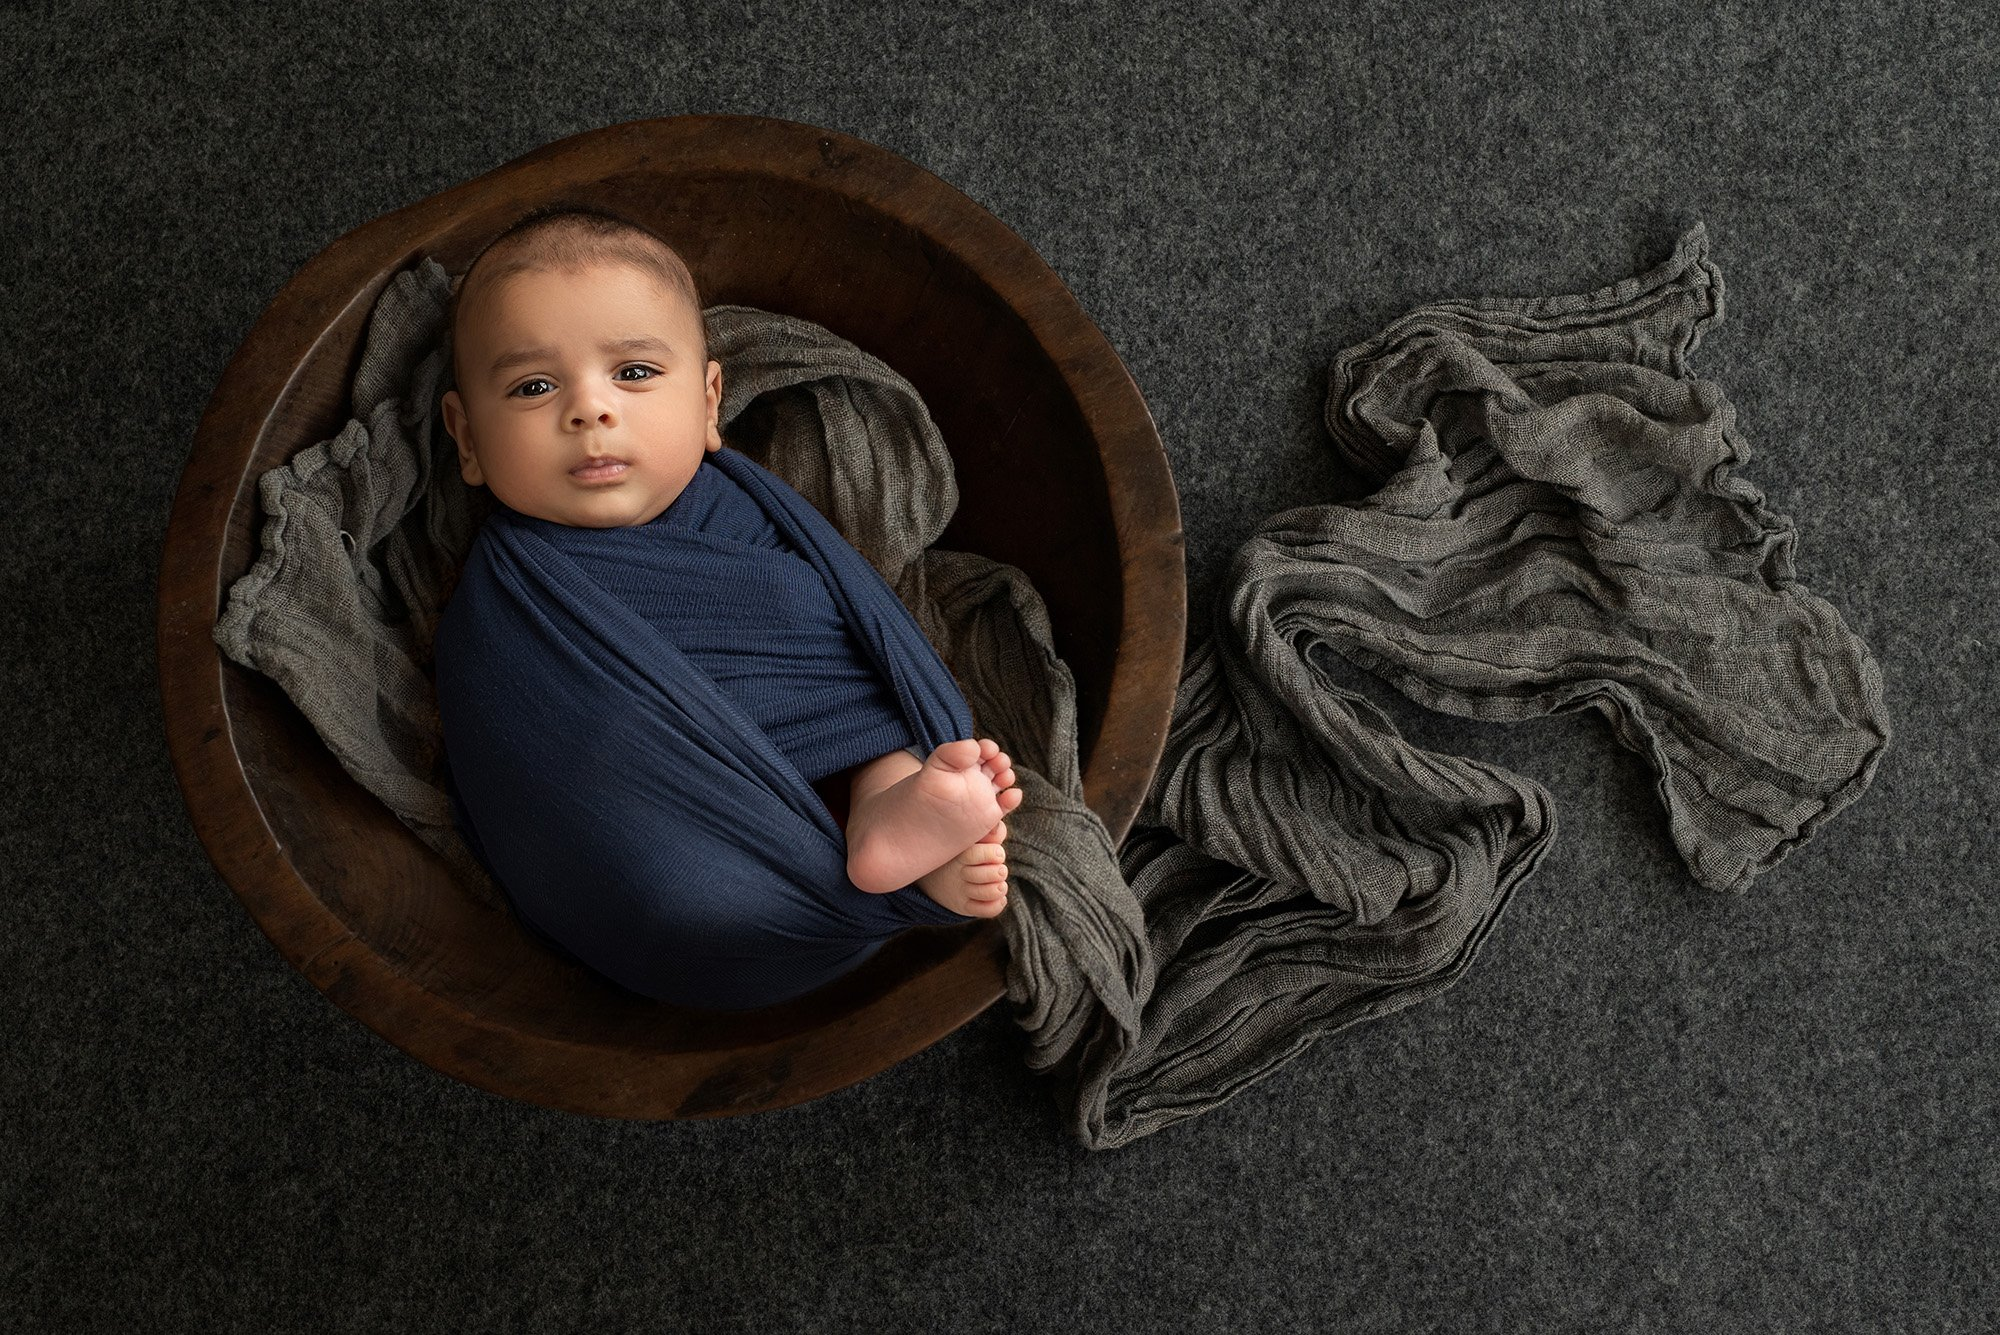 baby portraits newborn baby boy swaddled in blue laying on grey wrap inside wooden bowl